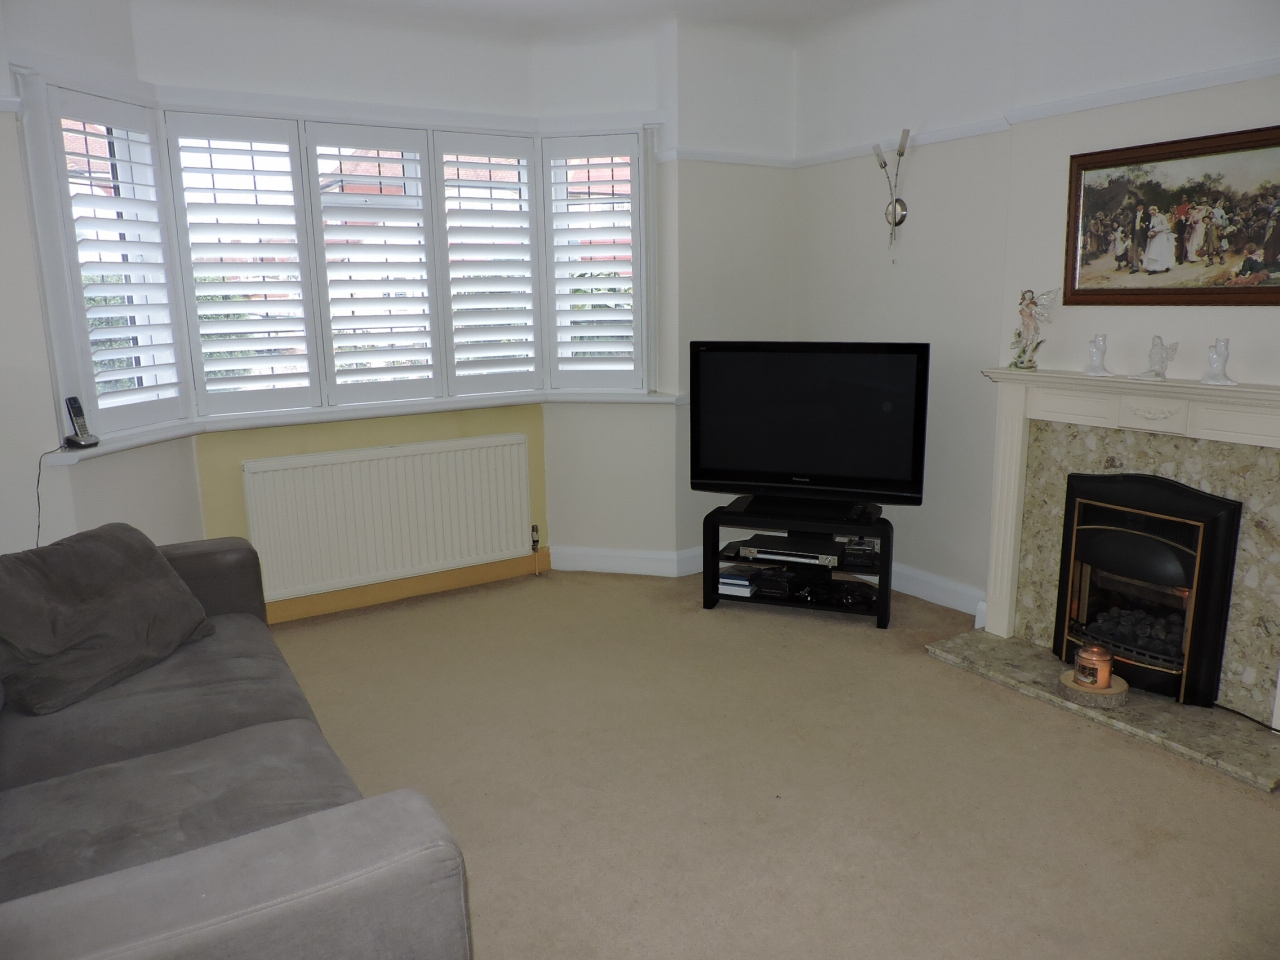 4 bedroom detached house SSTC in New Malden - Photograph 2